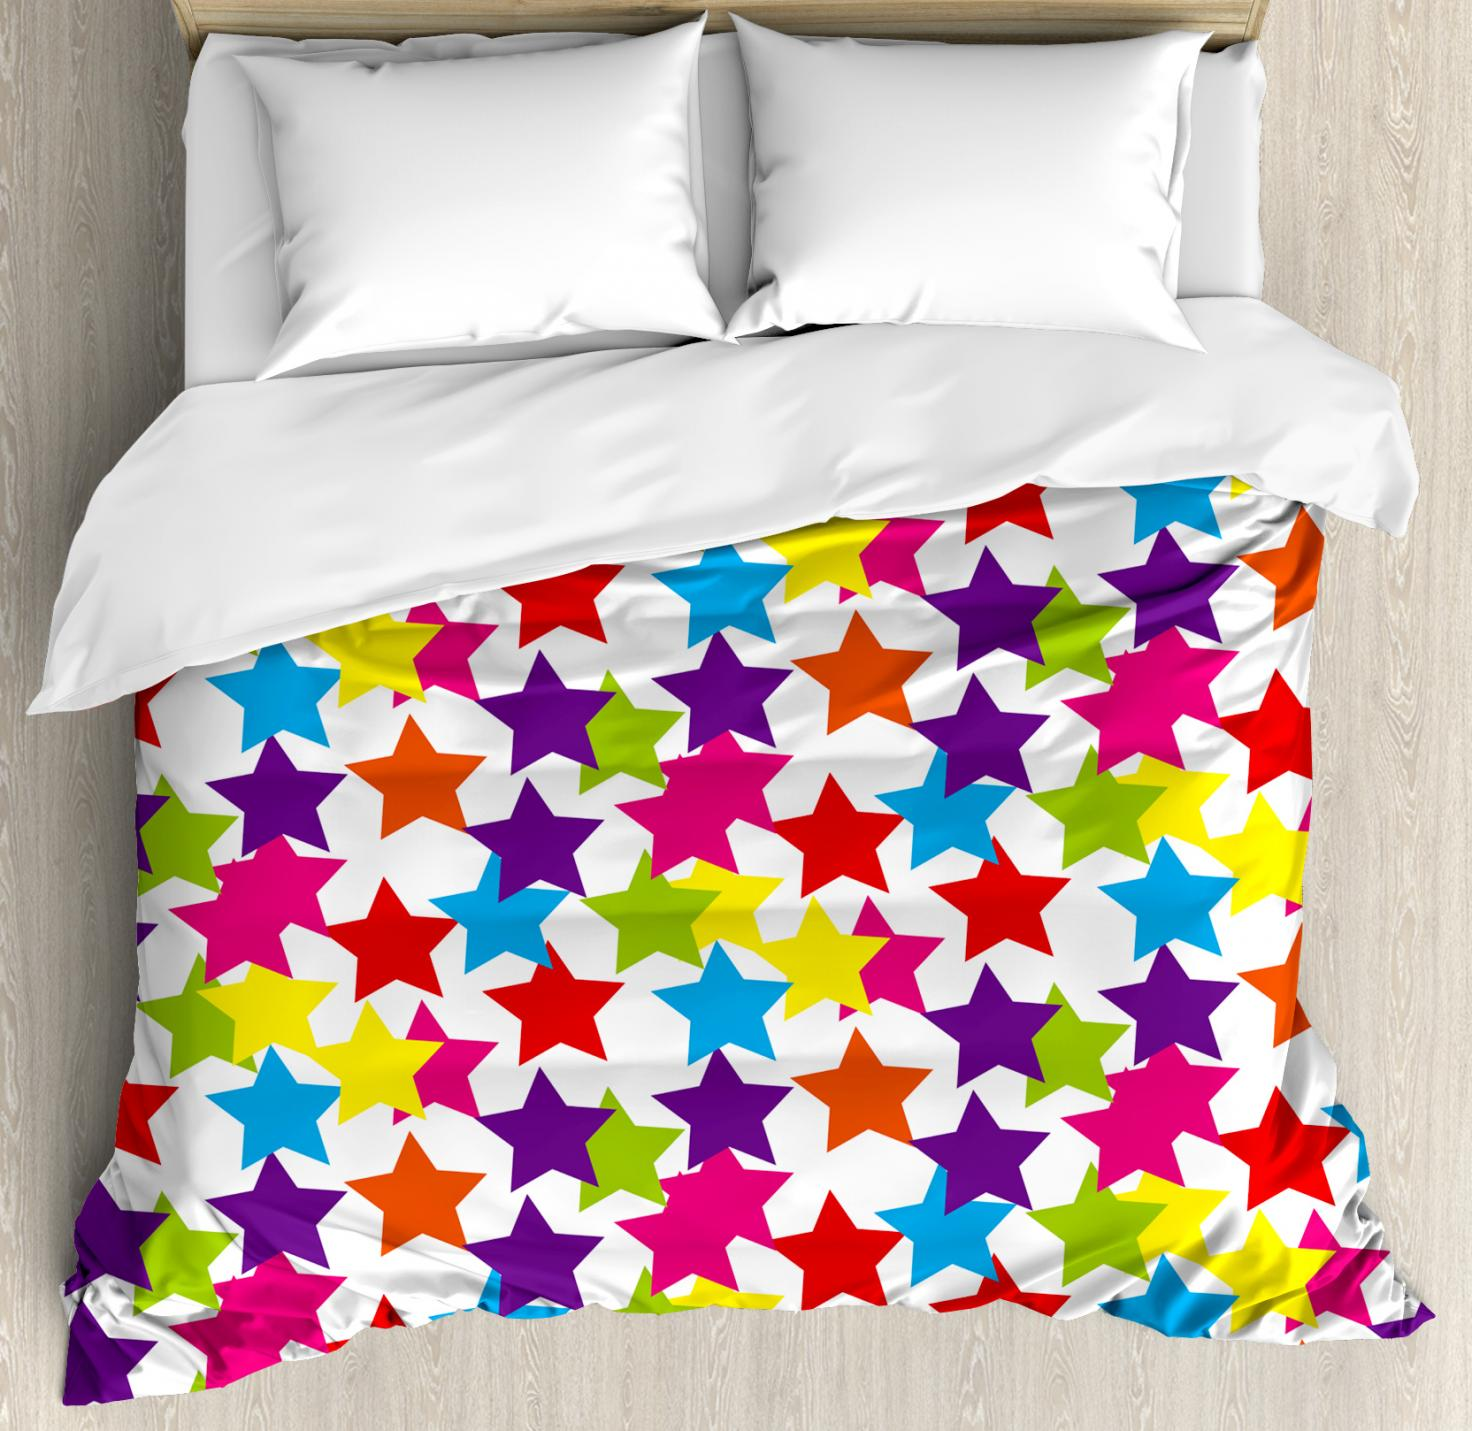 Modern Duvet Cover Set, Little Rainbow Colored Funky Stars Kids Nursery Boys Girls Theme Artistic Print, Decorative Bedding Set with Pillow Shams, Multicolor, by Ambesonne